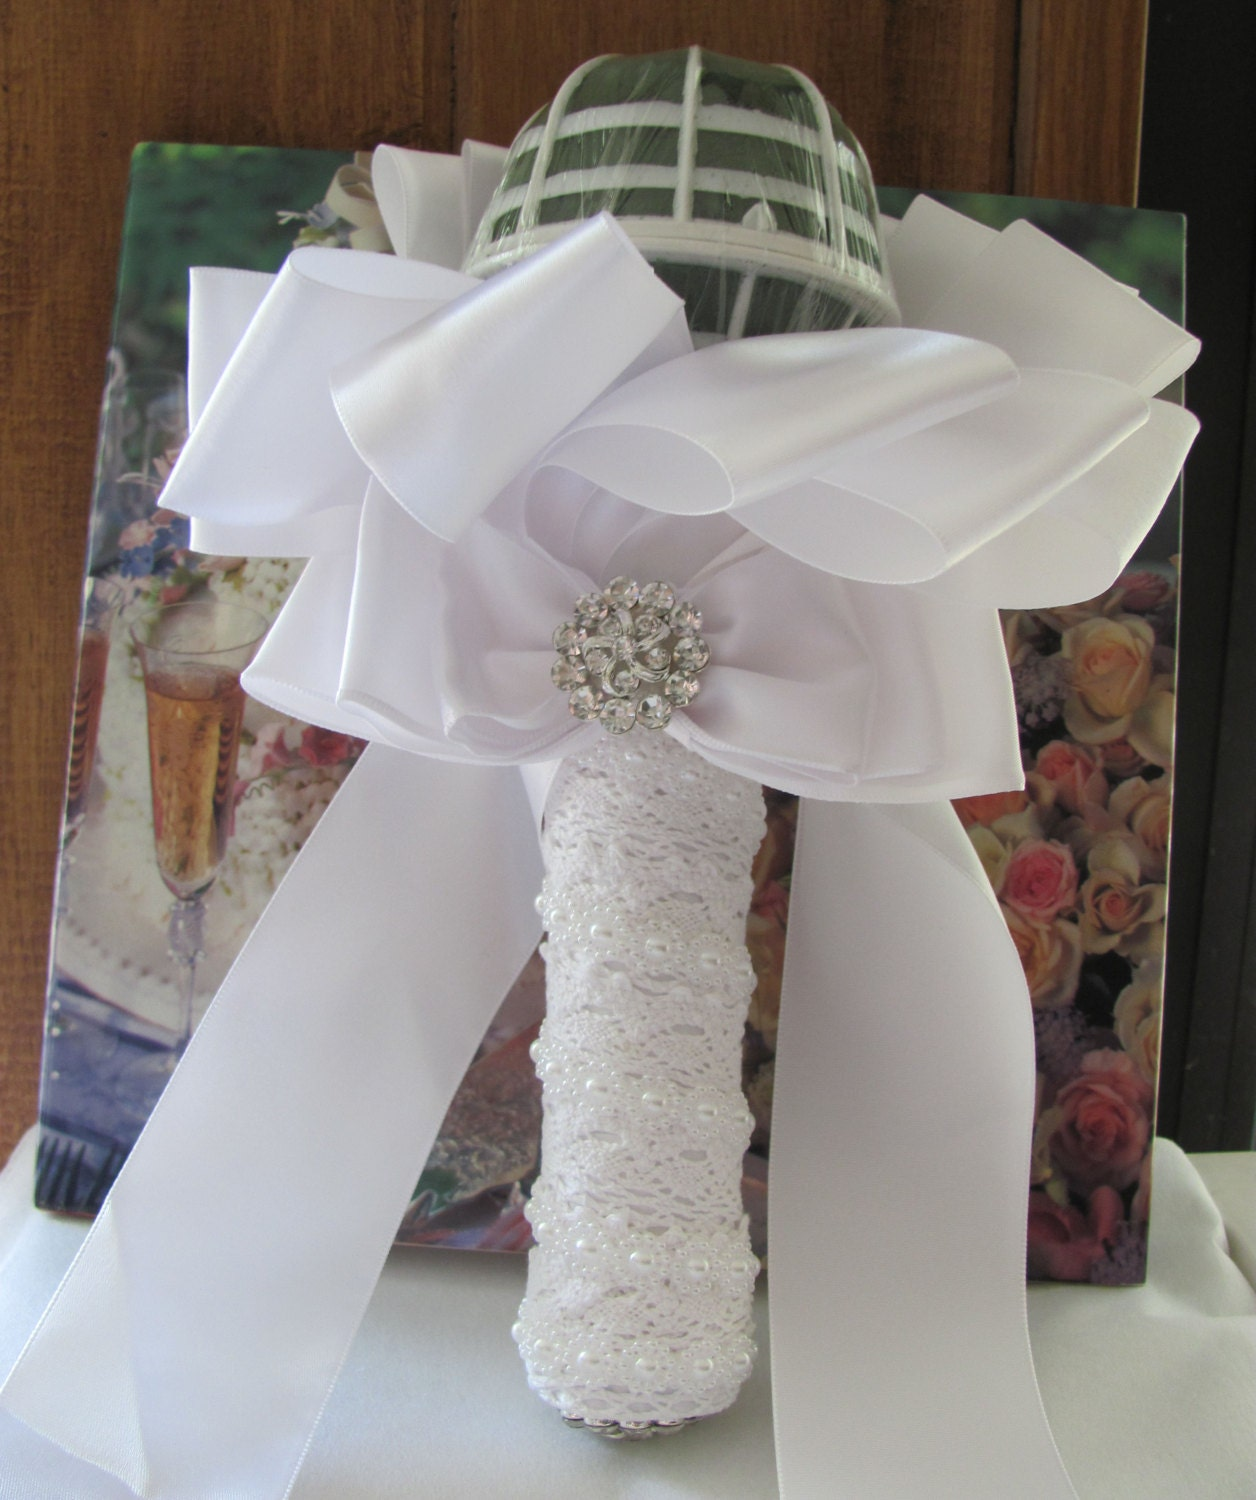 Handmade Wedding Flowers: Wedding Bouquet Holder Create Your Own DIY Bridal Bouquet